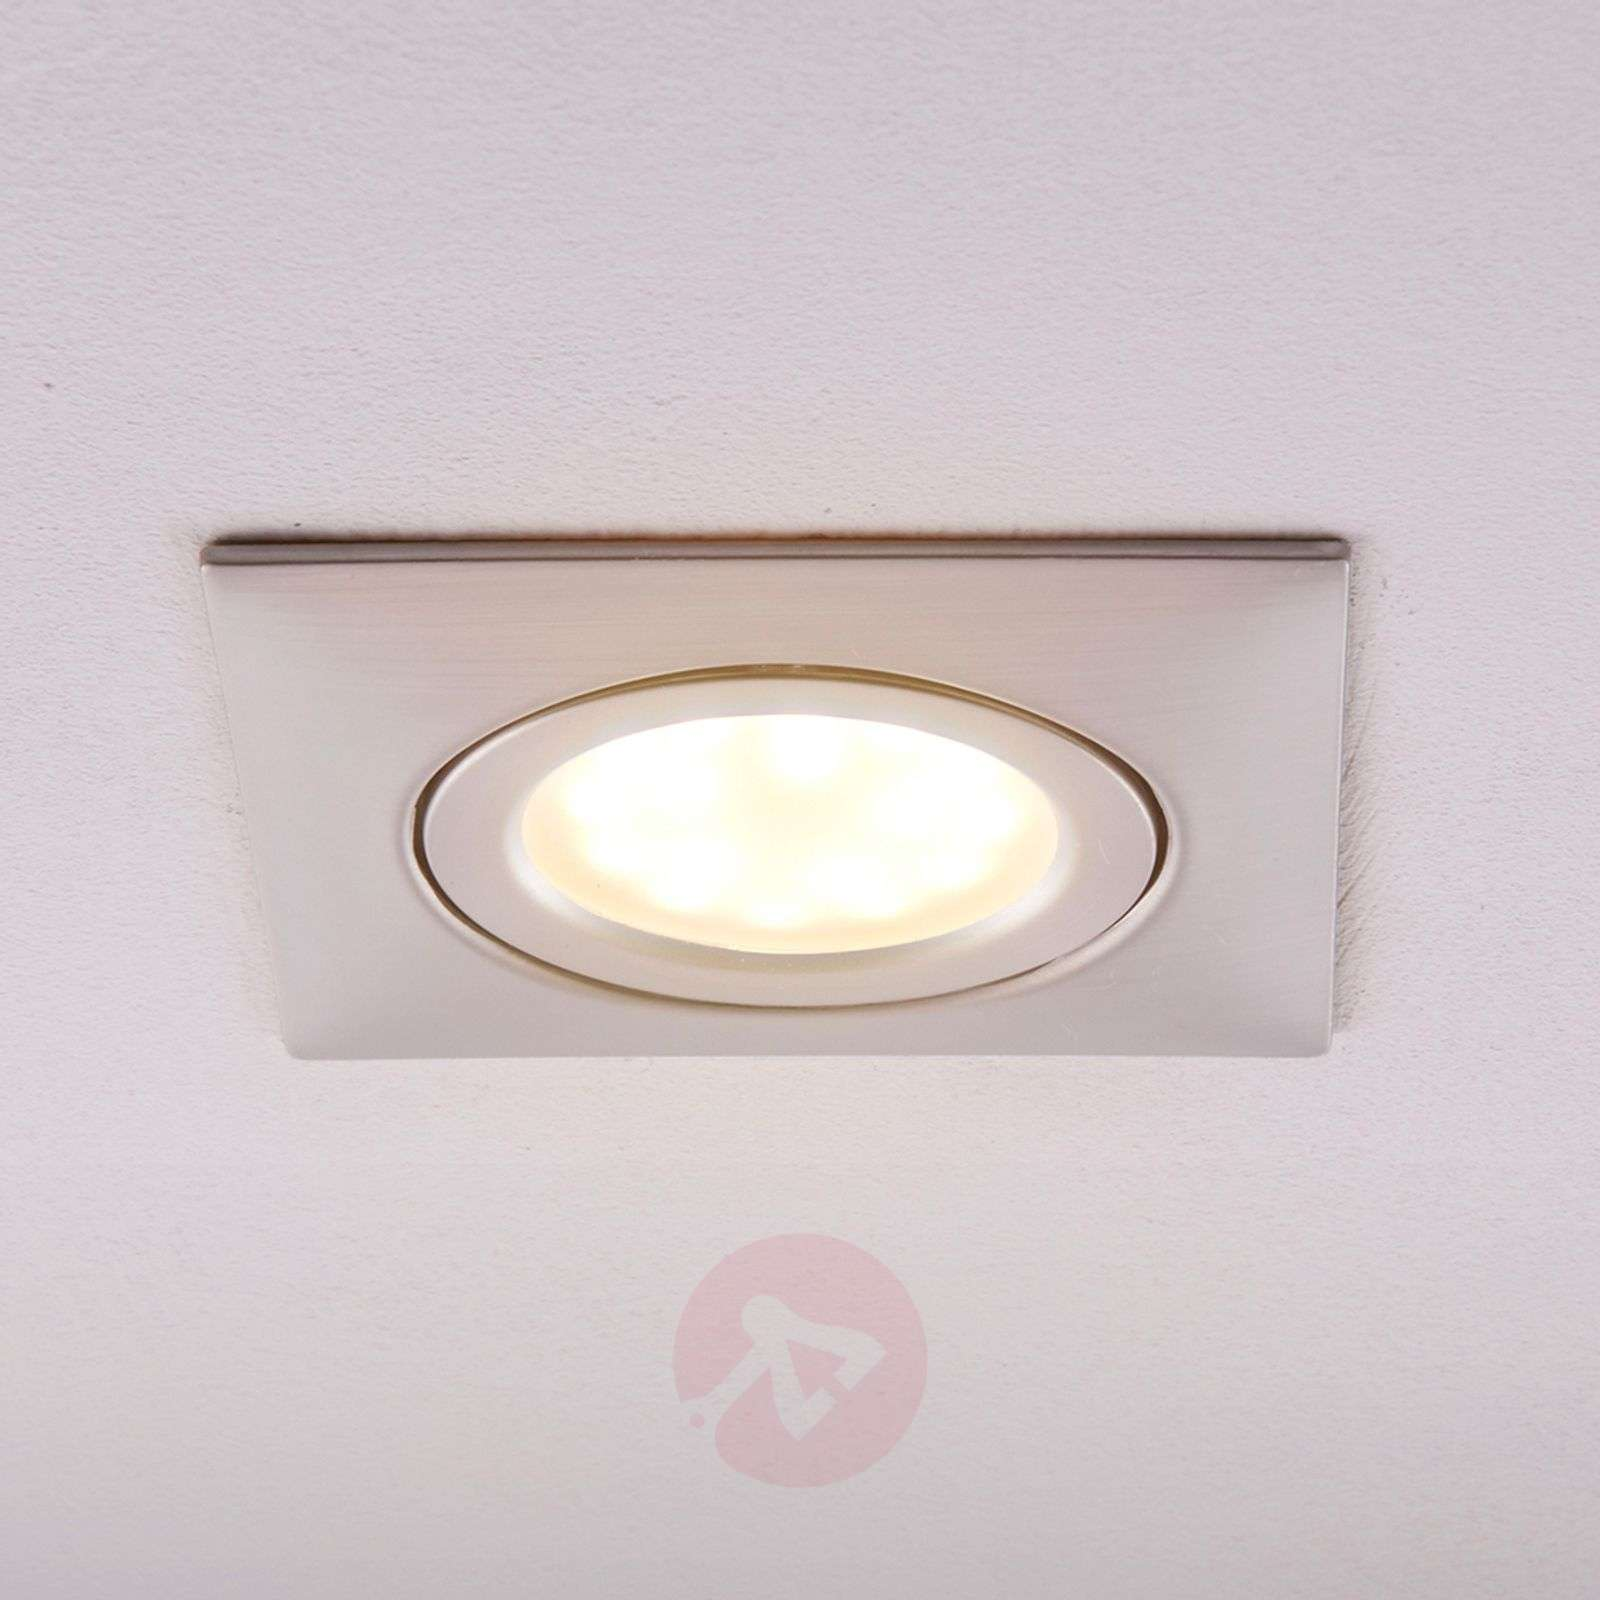 Spot encastré LED Andrej, angulaire, nickel-9620855-03